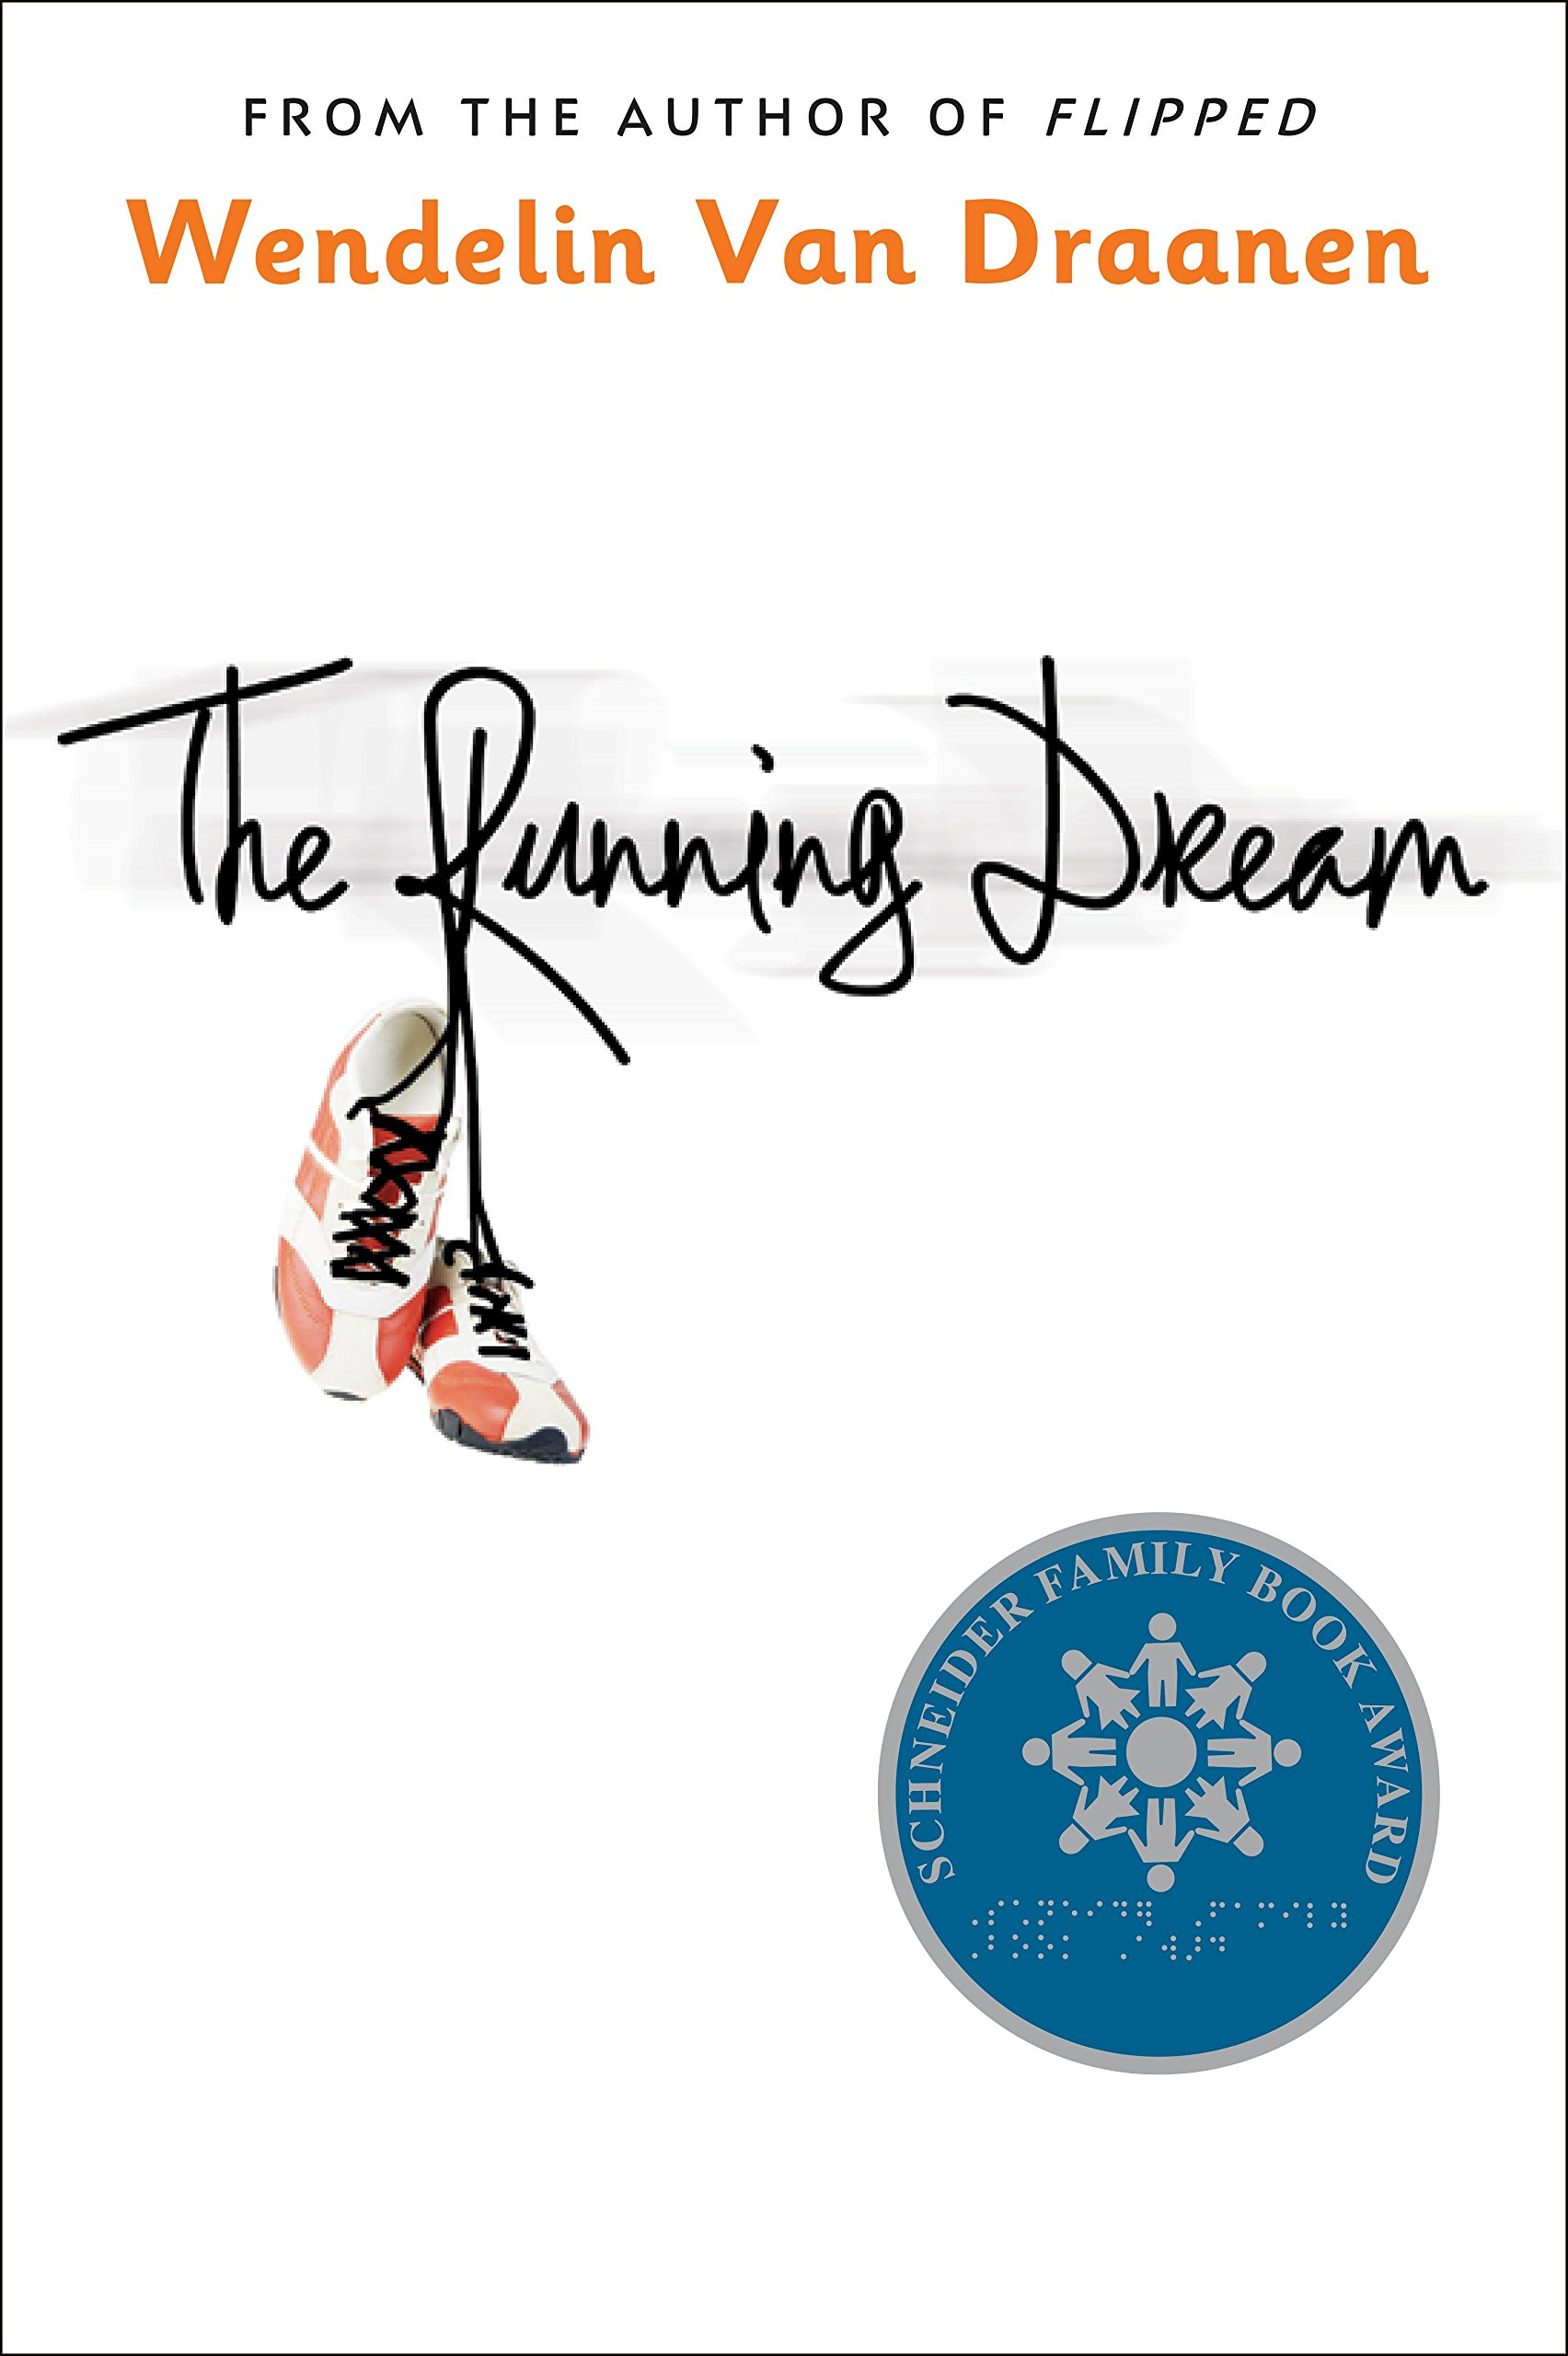 The Running Dream (Schneider Family Book Award – Teen Book Winner)